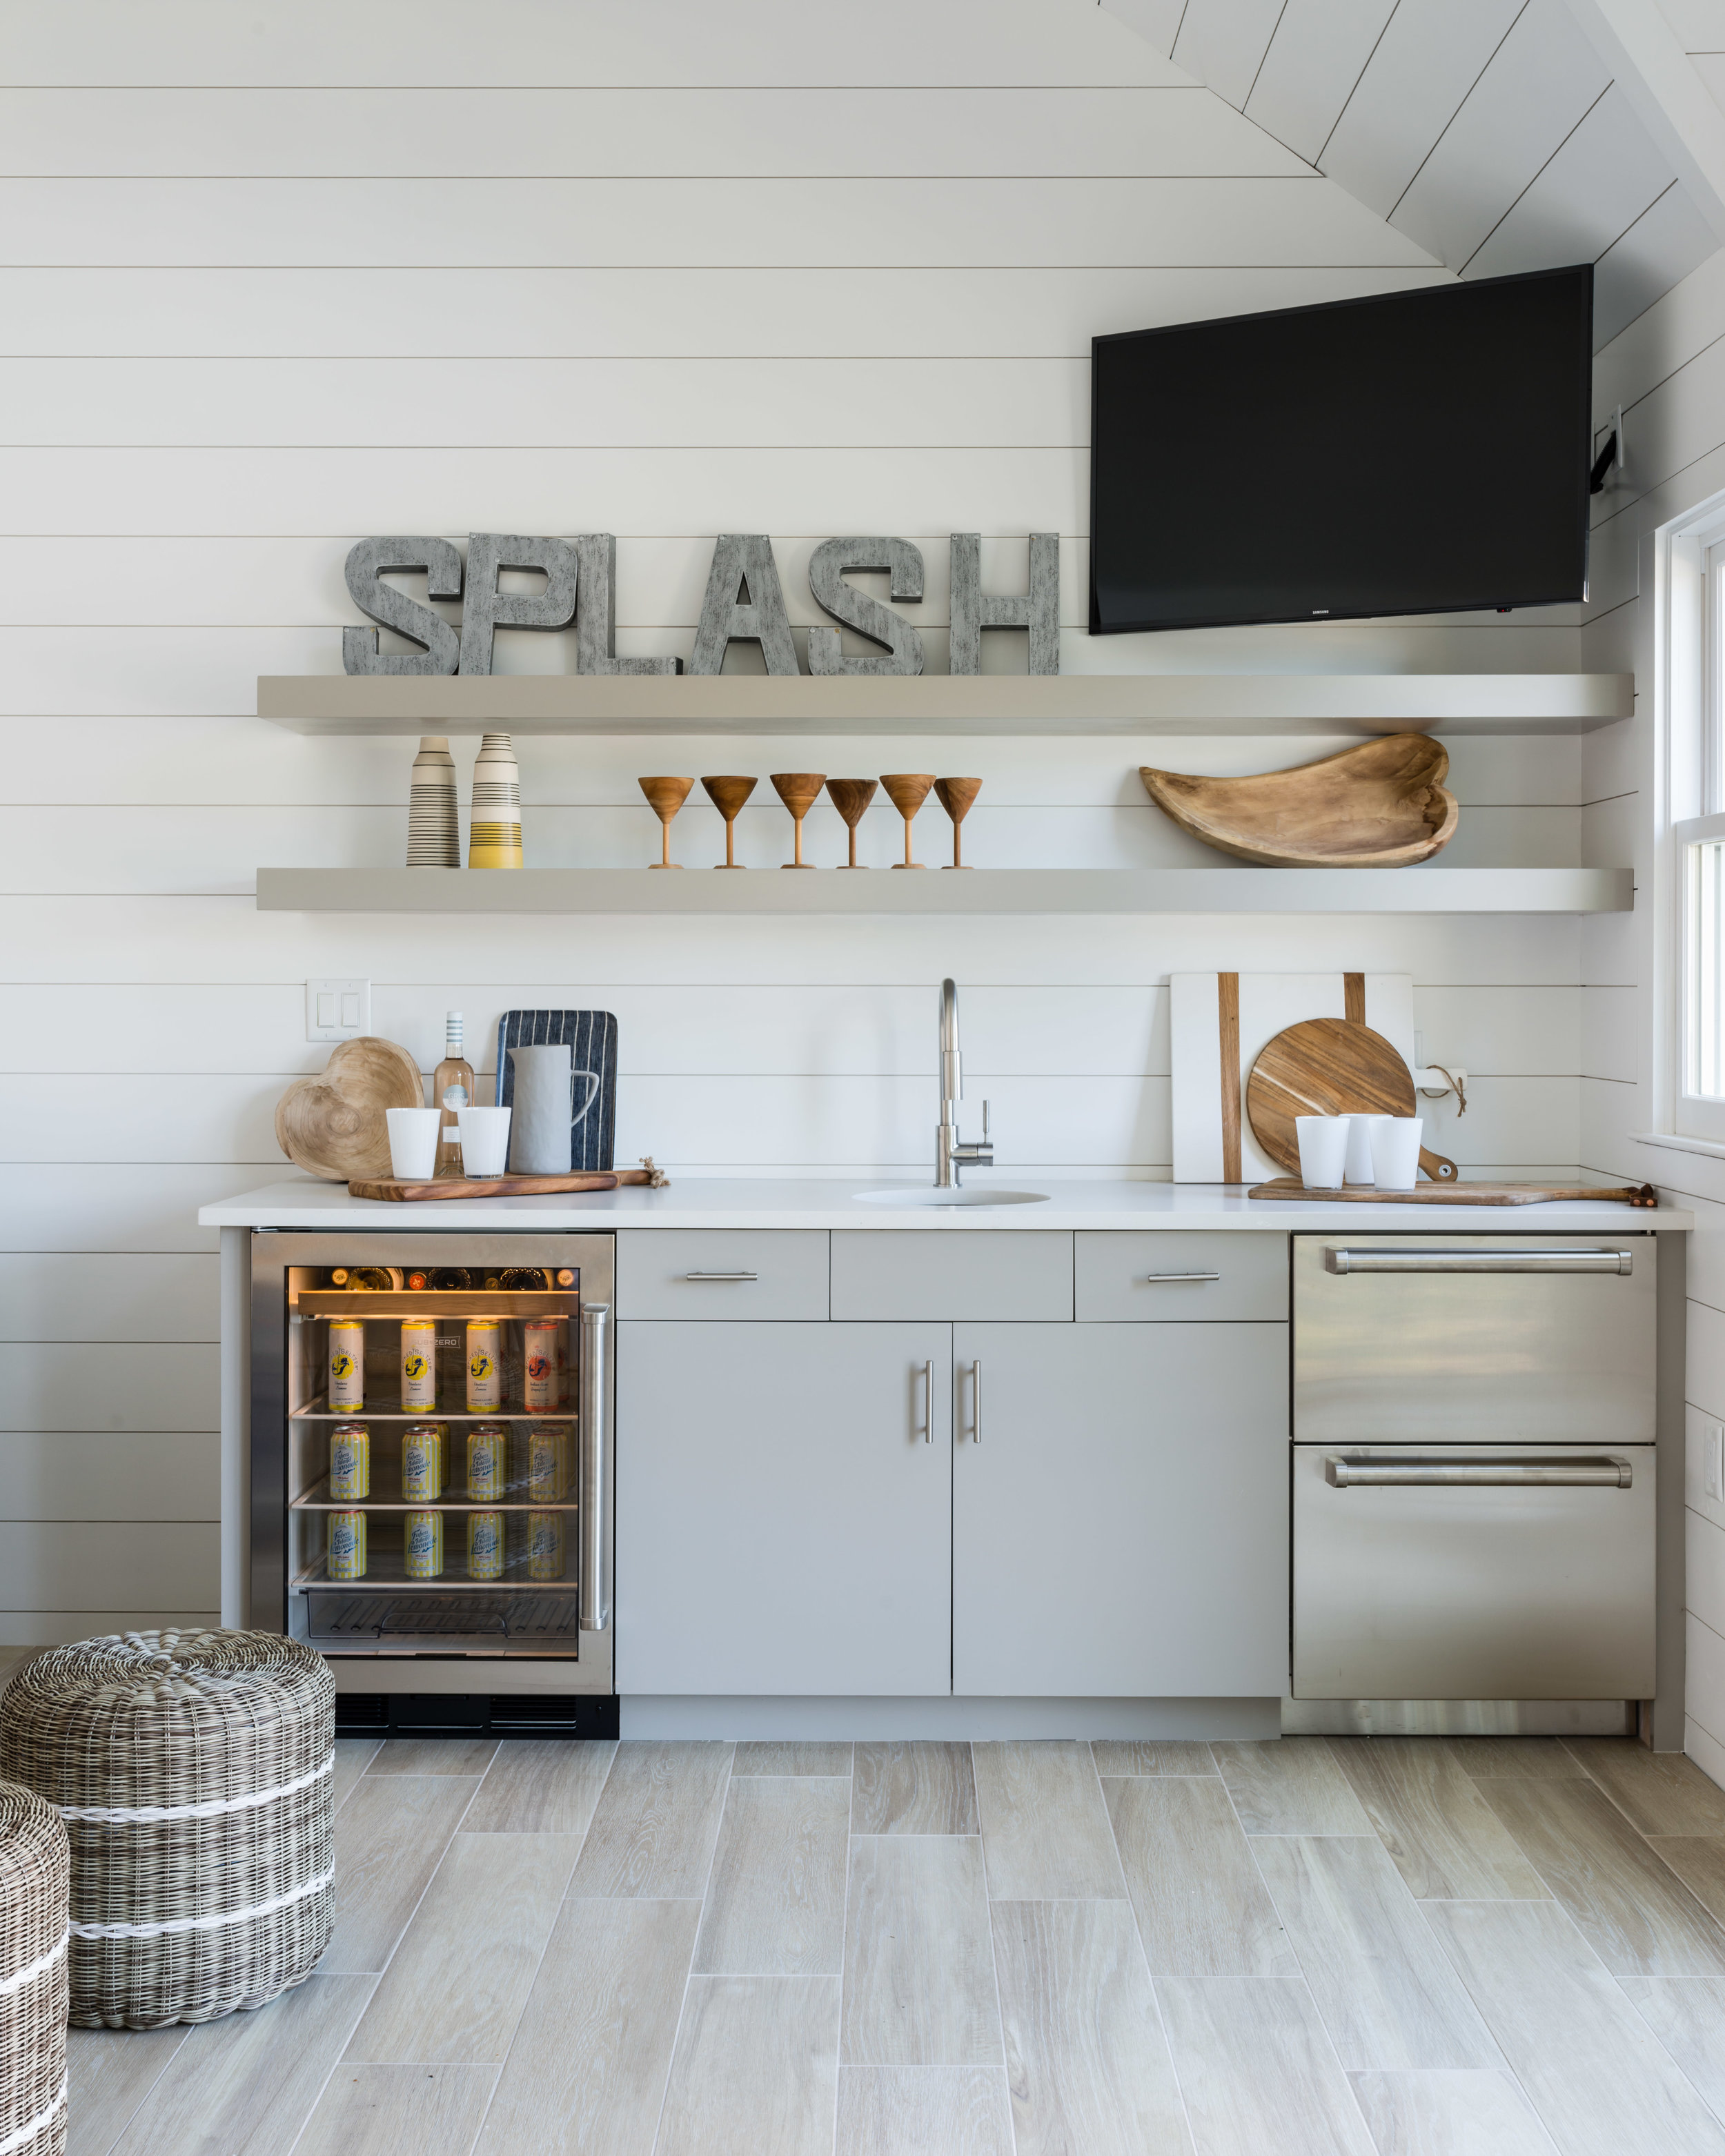 Paint:  Benjamin Moore White ; Tile:  Plank Tile Madera Beige ; Accessories:  Piece . Interior Design:  CM Design  // Photo:  Jessica Delaney